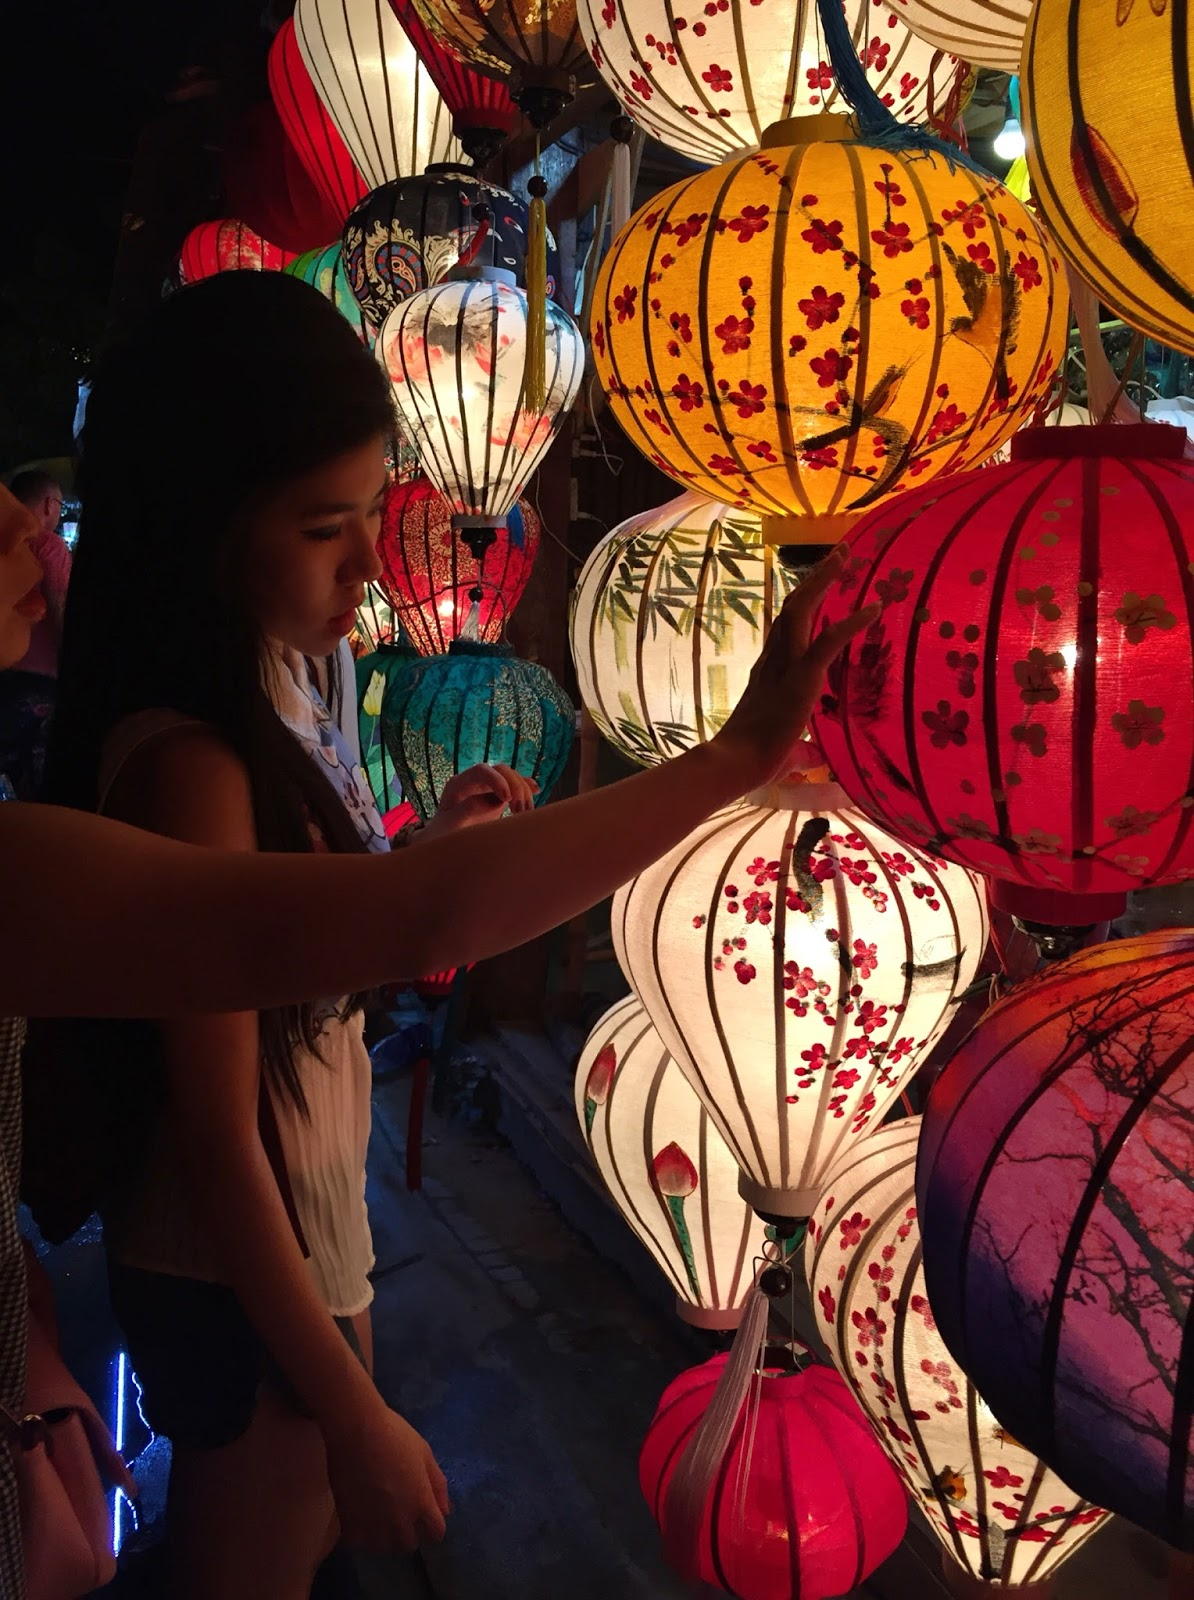 Adrienne Nguyen_Invictus_Vietnam_Travel Blogger_Travel to Vietnam_Hoi An Ancient Town